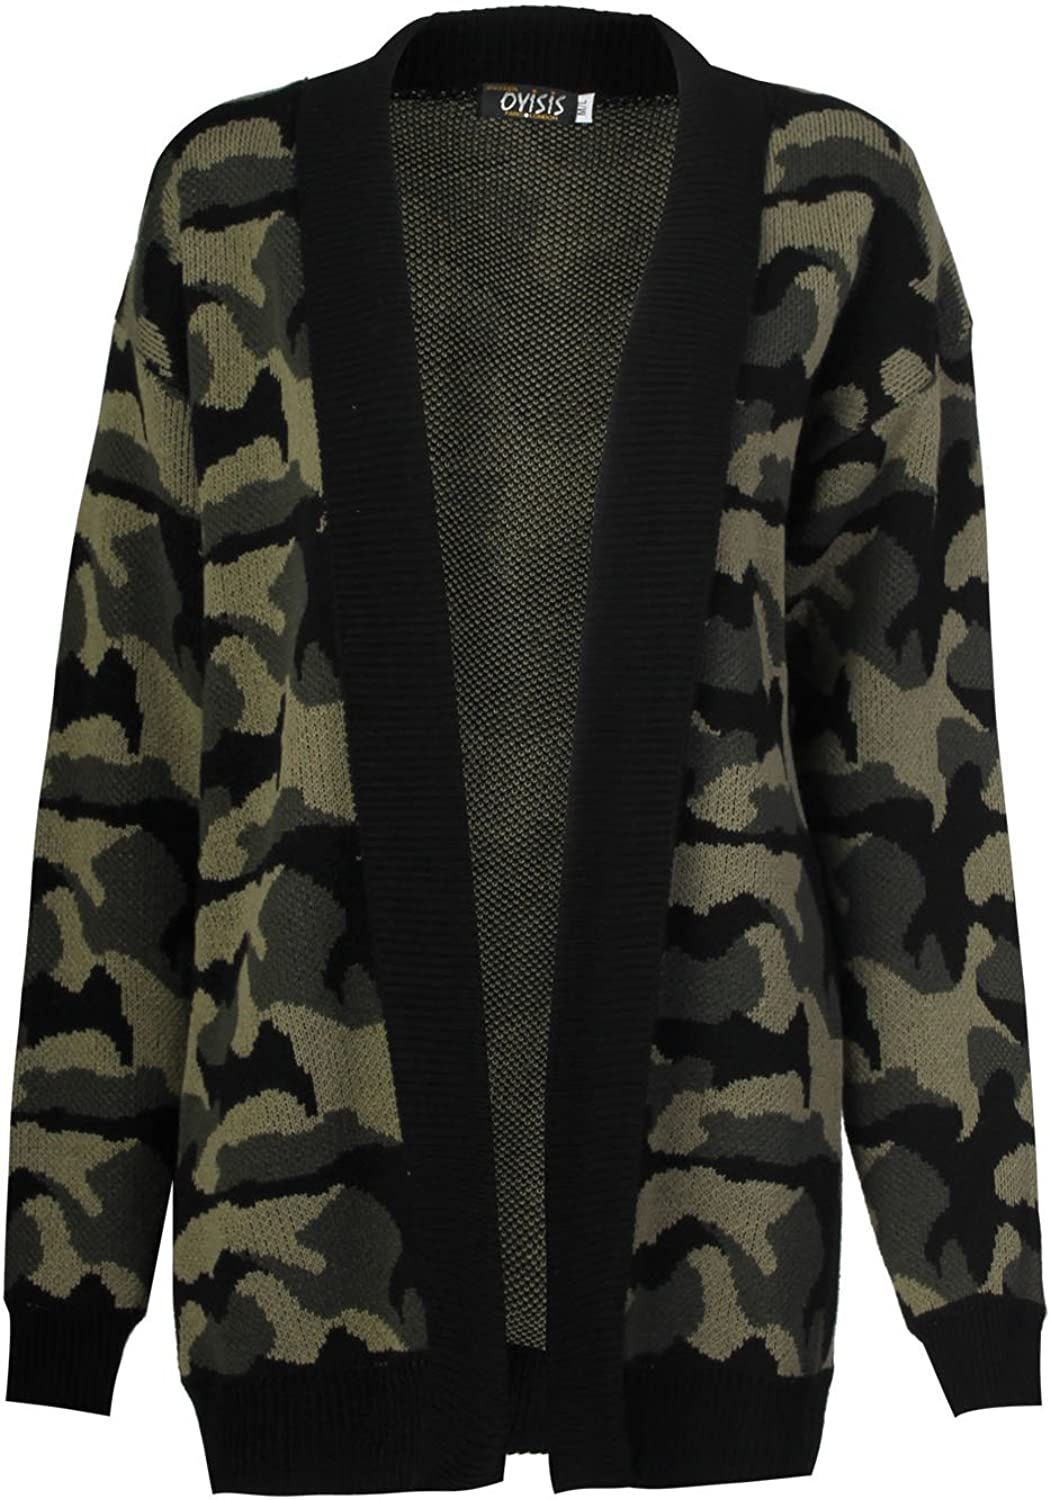 CBTLVSN Mens Winter Long Sleeve Knitted Button Down Cardigan Sweaters